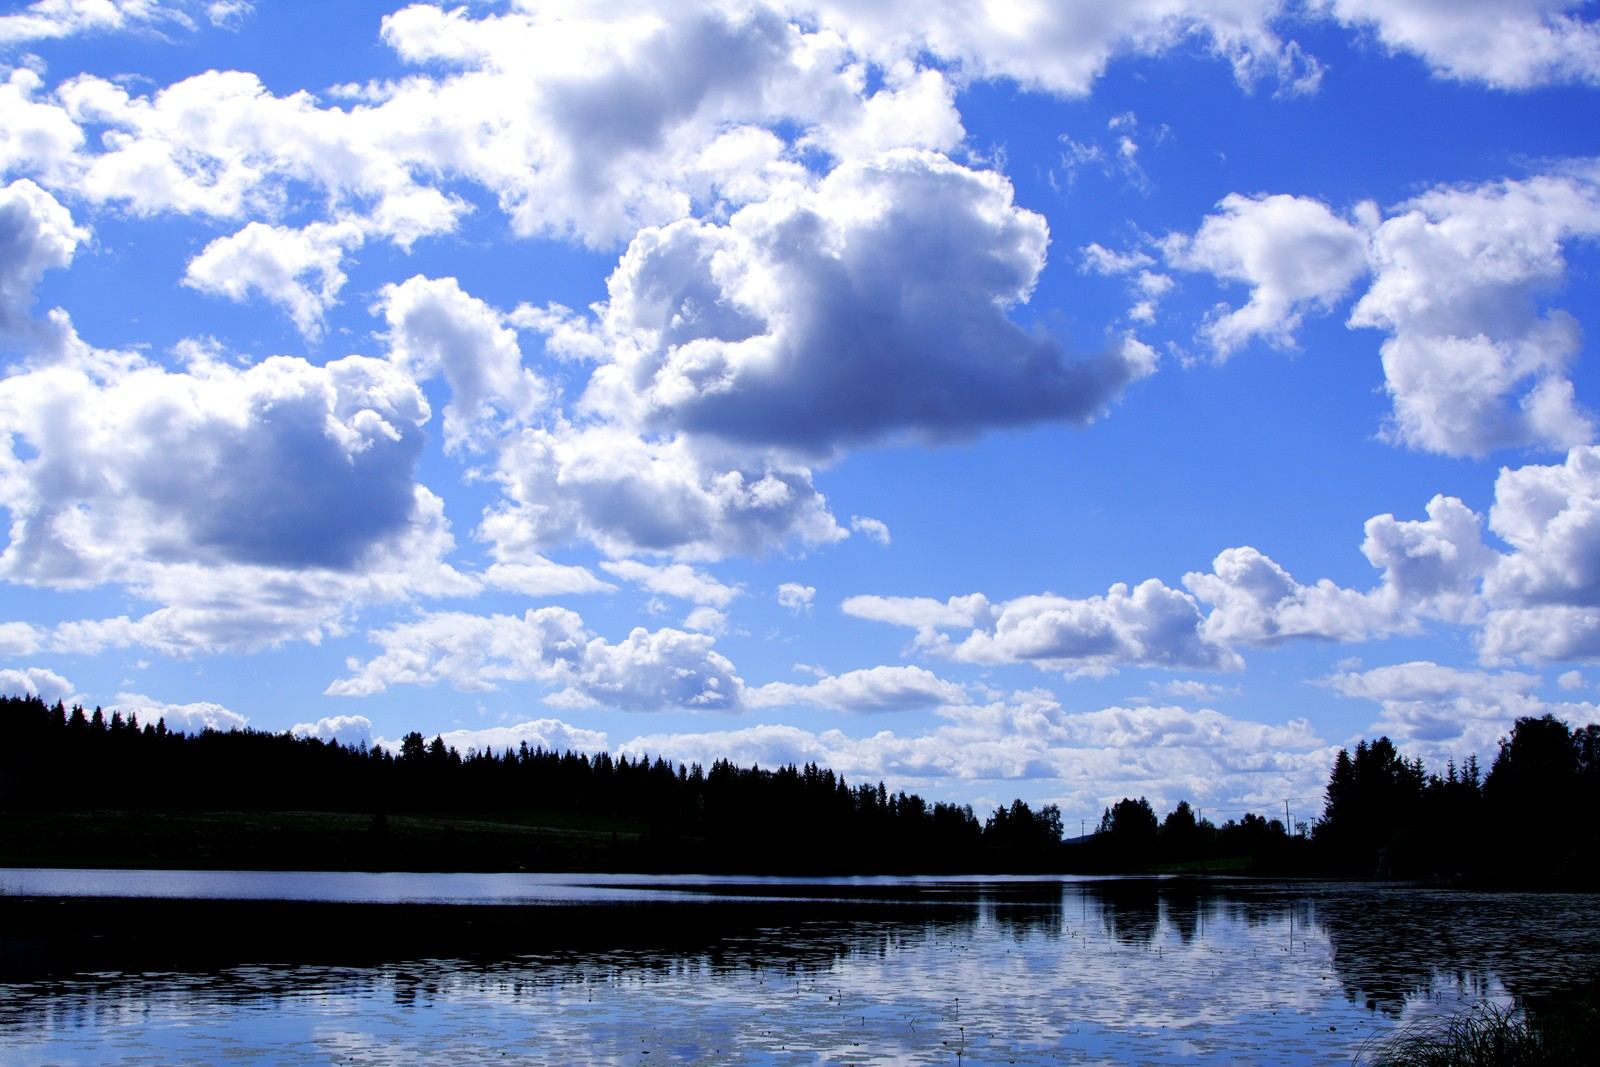 Clouds River Effects Mirror Reflection Sky Water Blue - Sky Effects Hd , HD Wallpaper & Backgrounds